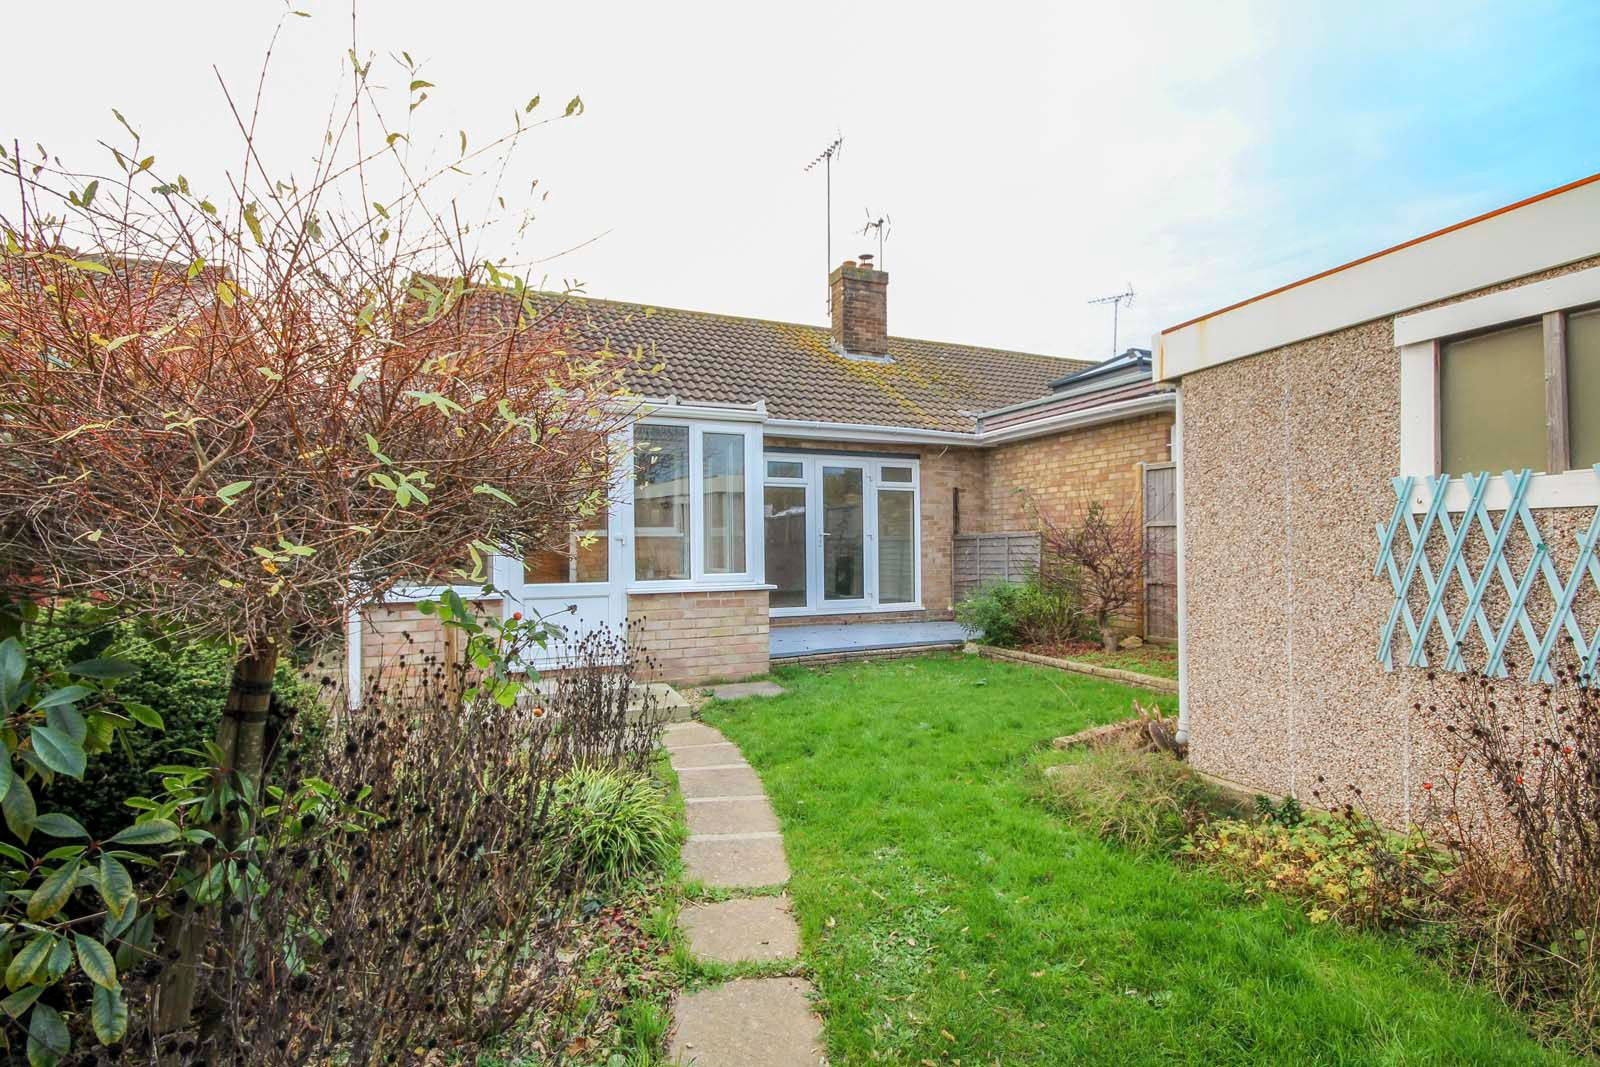 2 bed bungalow for sale in Ashurst Way COMP July 2019 4